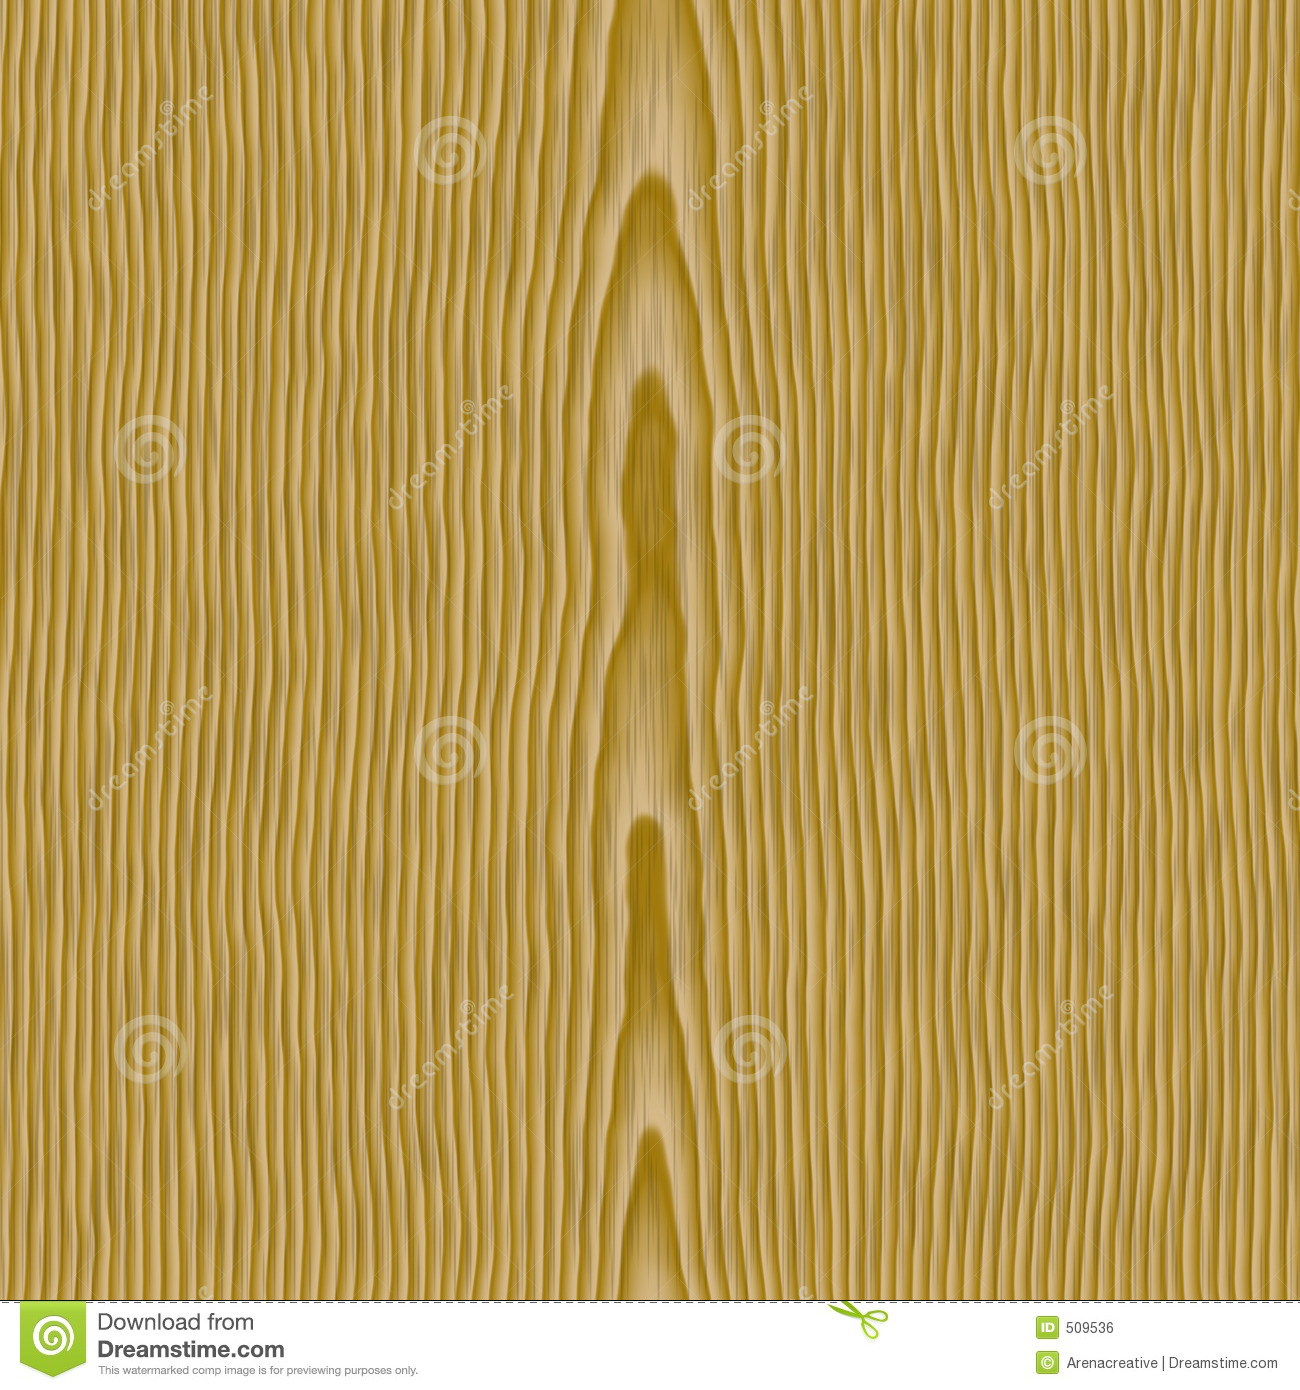 Architecture wood fine wood light wood natural pine light wood - Oak Woodgrain Royalty Free Stock Image Image 509536